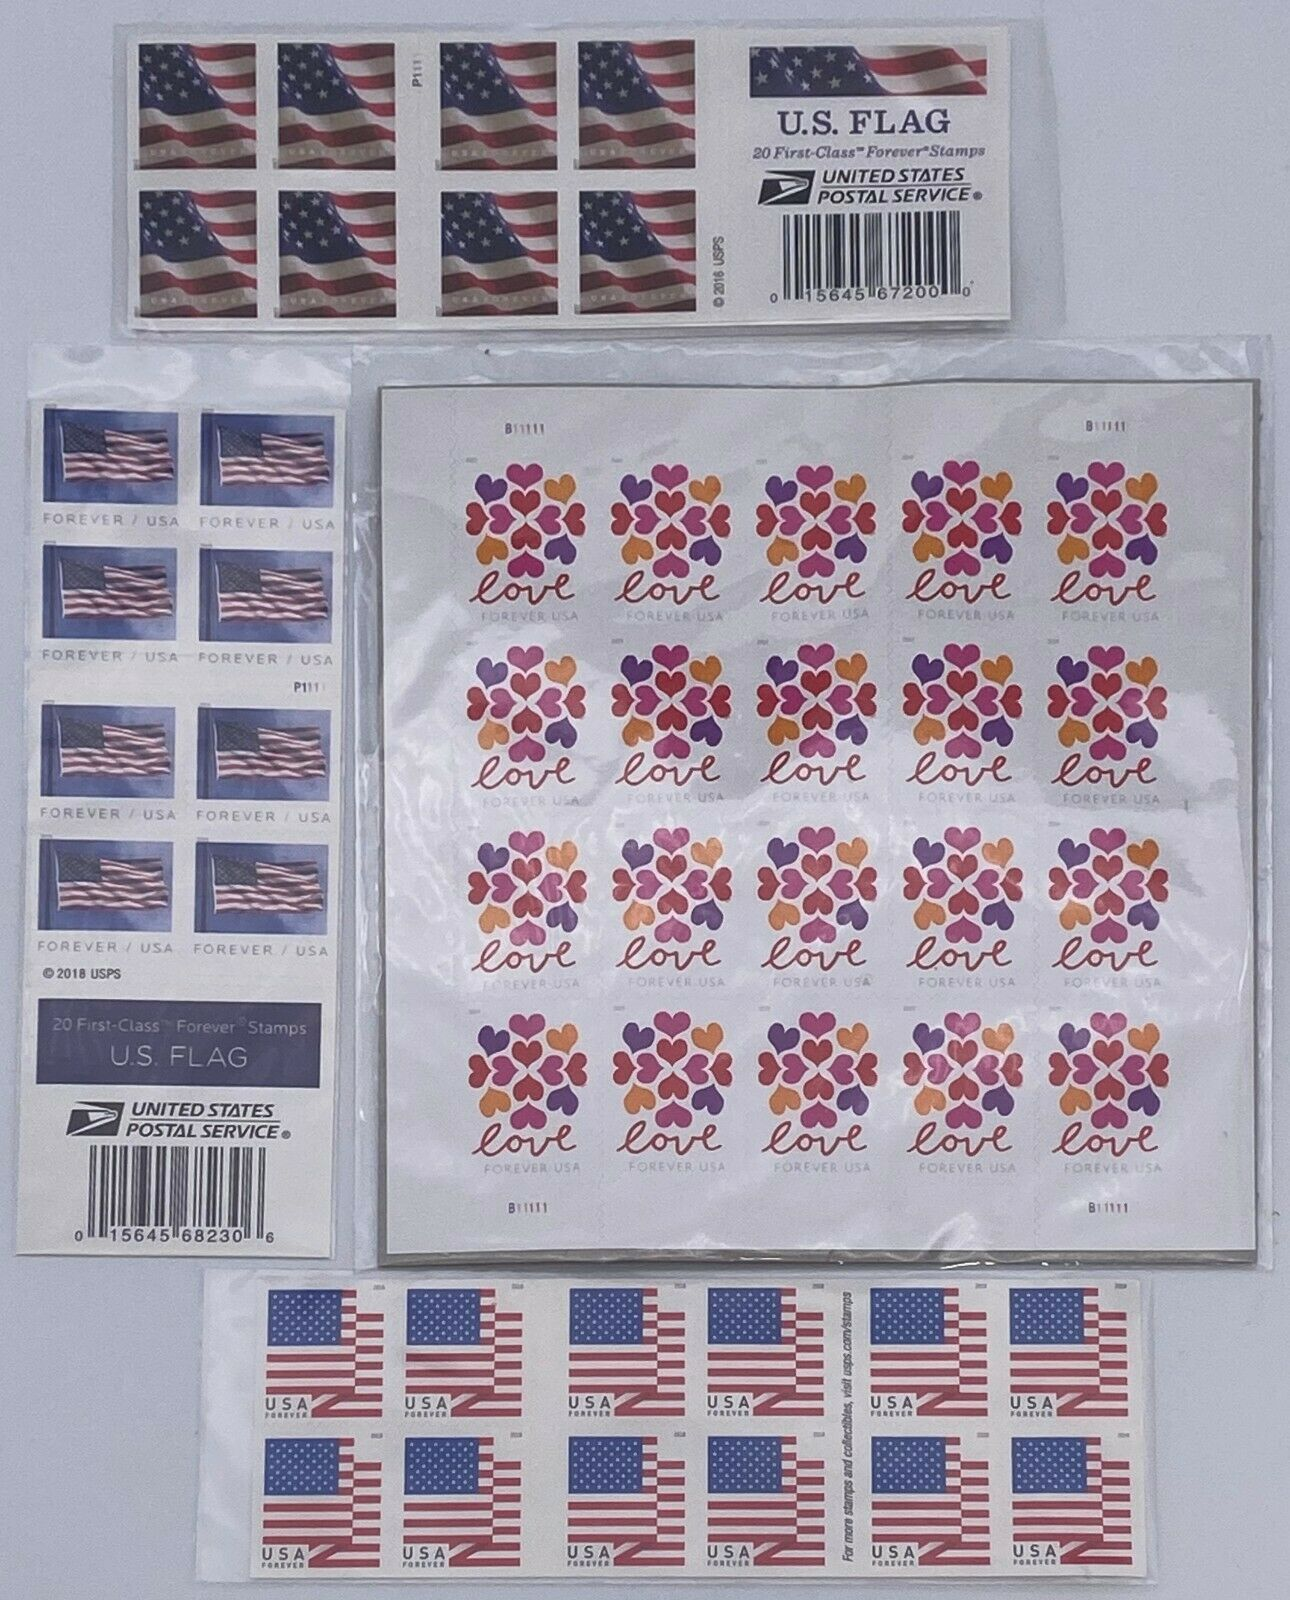 2017 US Flag Postage Stamps Roll of 100